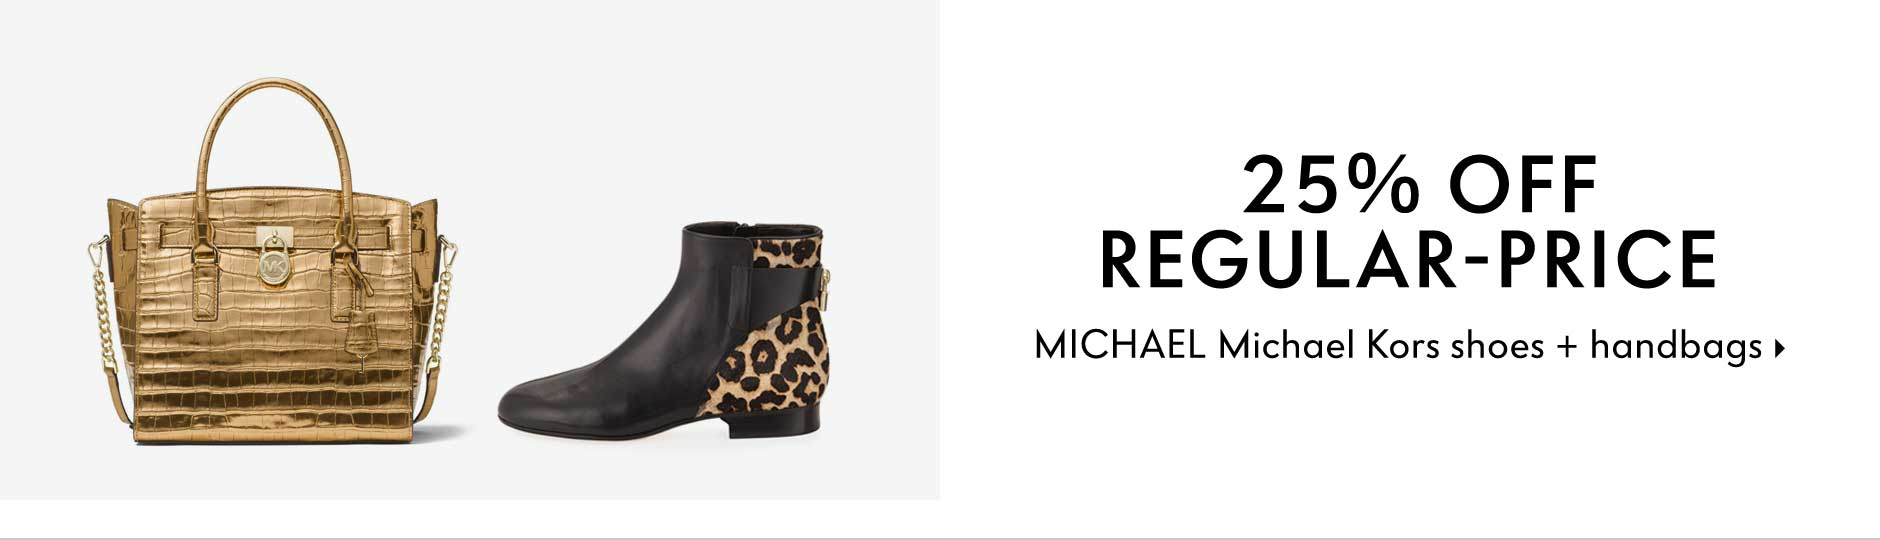 25% Off regular - price michael michael kors shoes + handbags